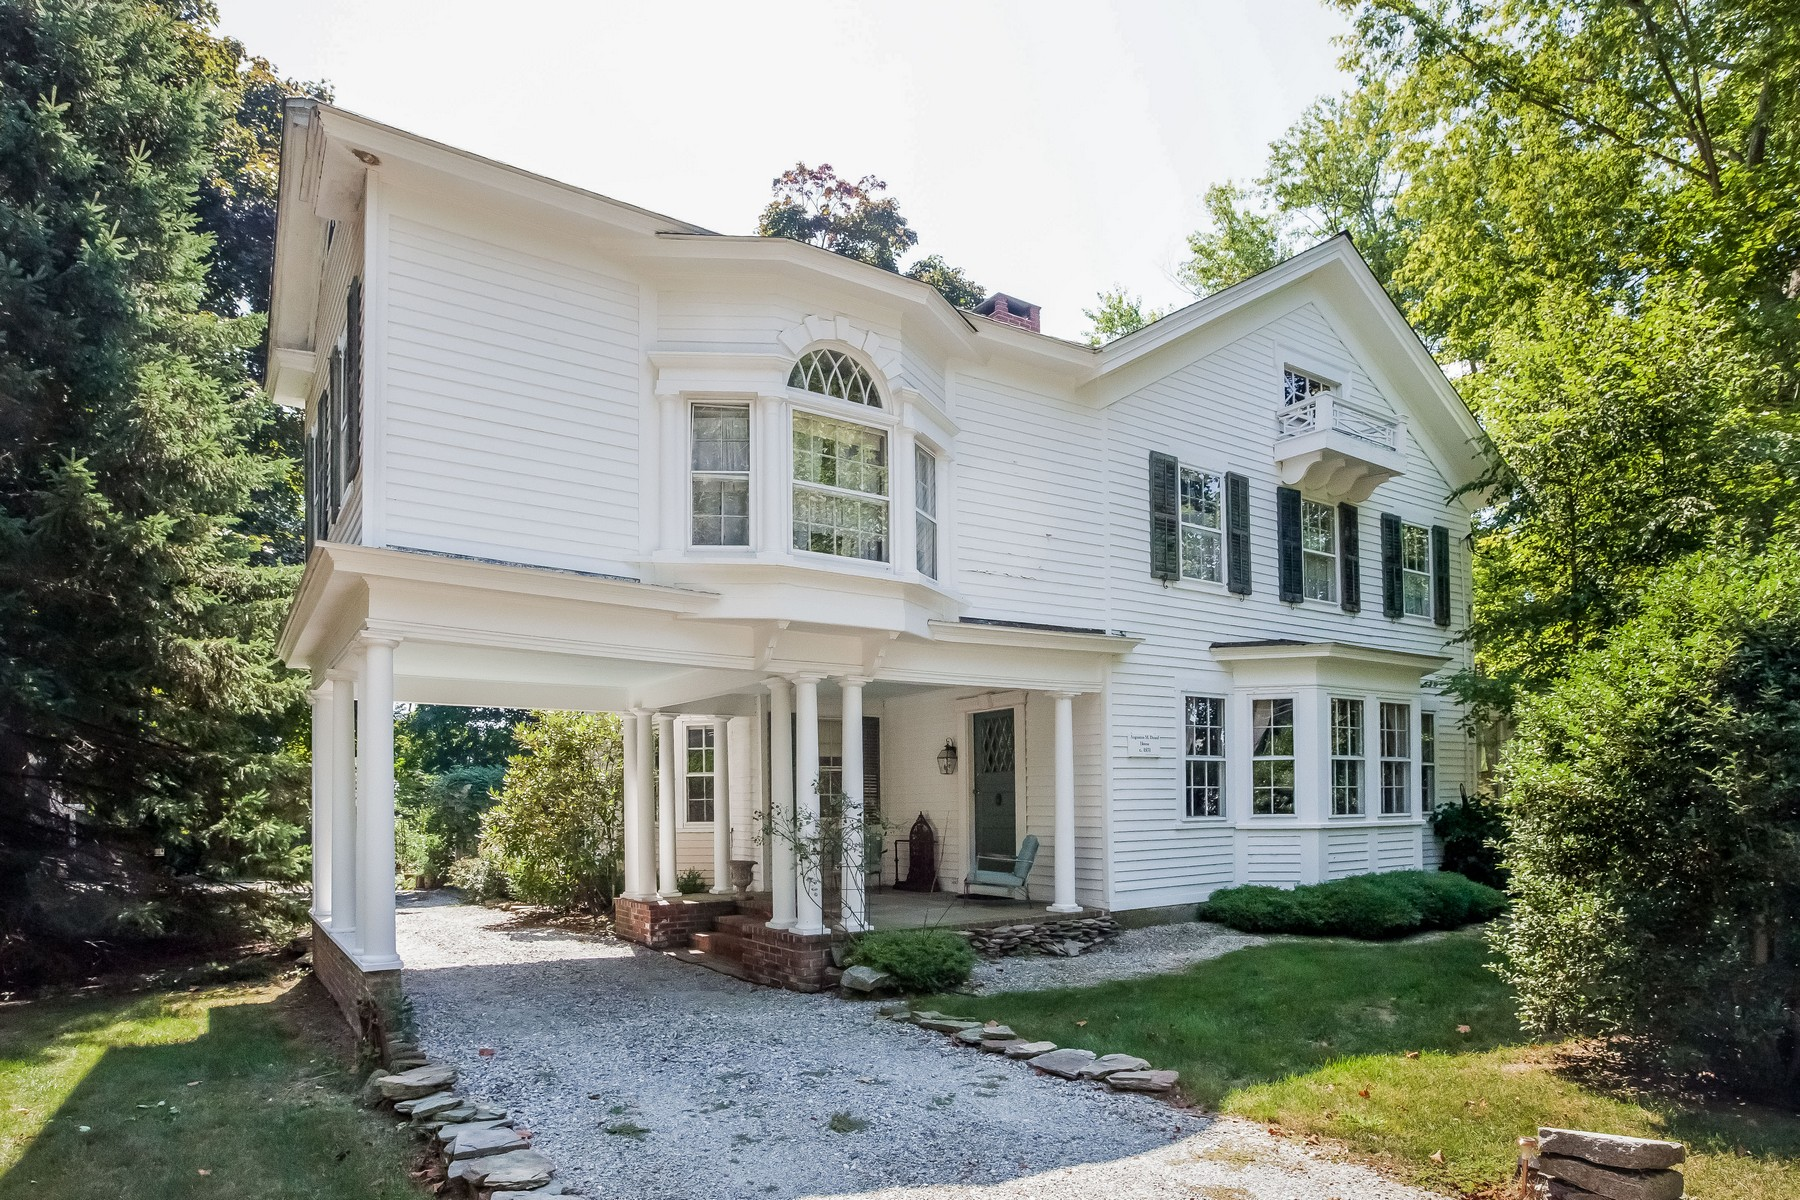 Single Family Home for Sale at One of a Kind Historic 1820 Estate 318 Boston Post Rd Madison, Connecticut, 06443 United States